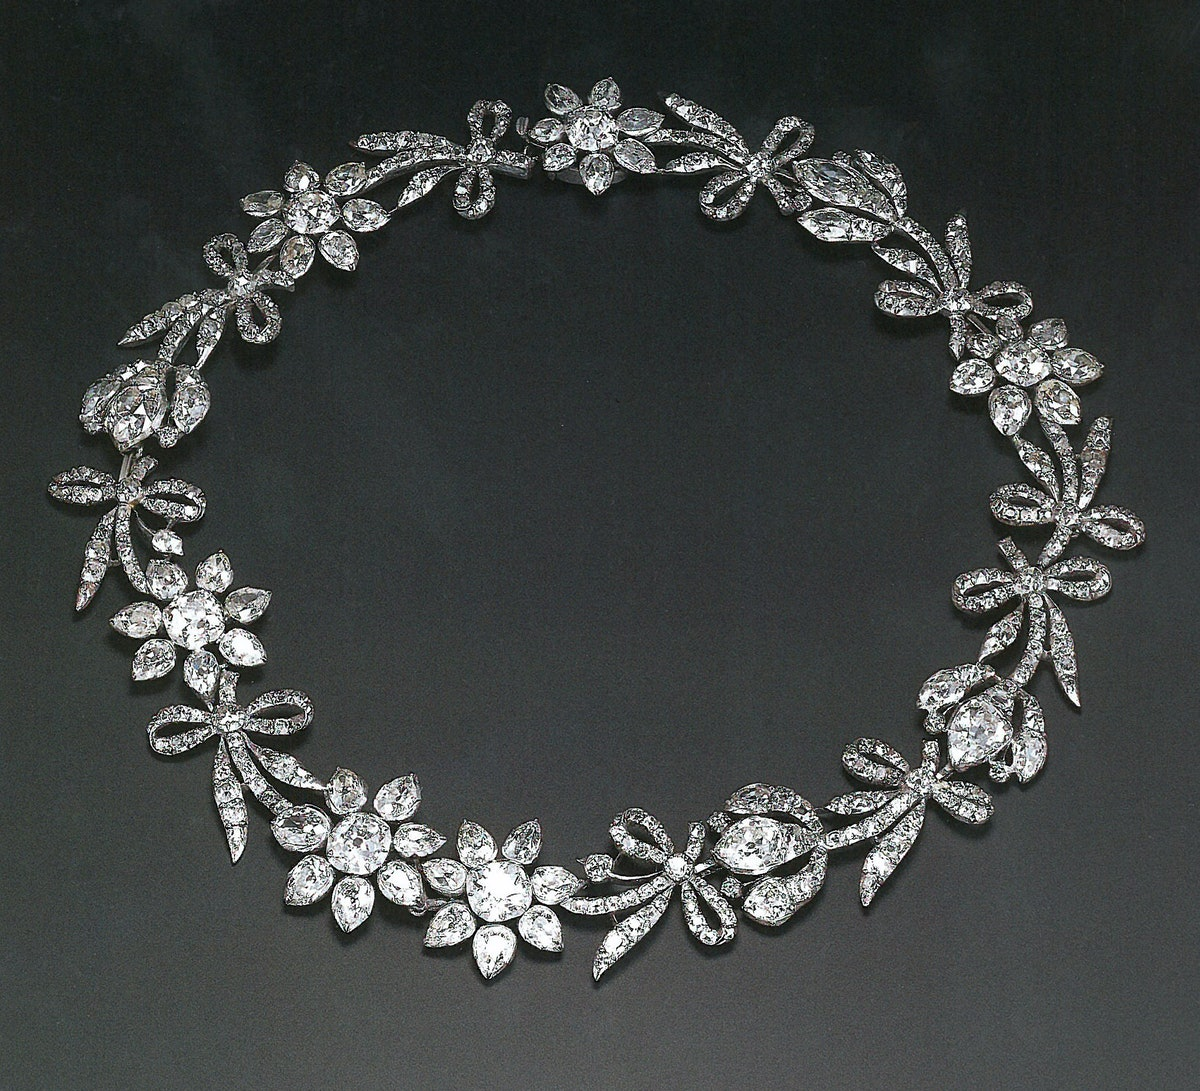 Necklace from the Estate of Irma Adler